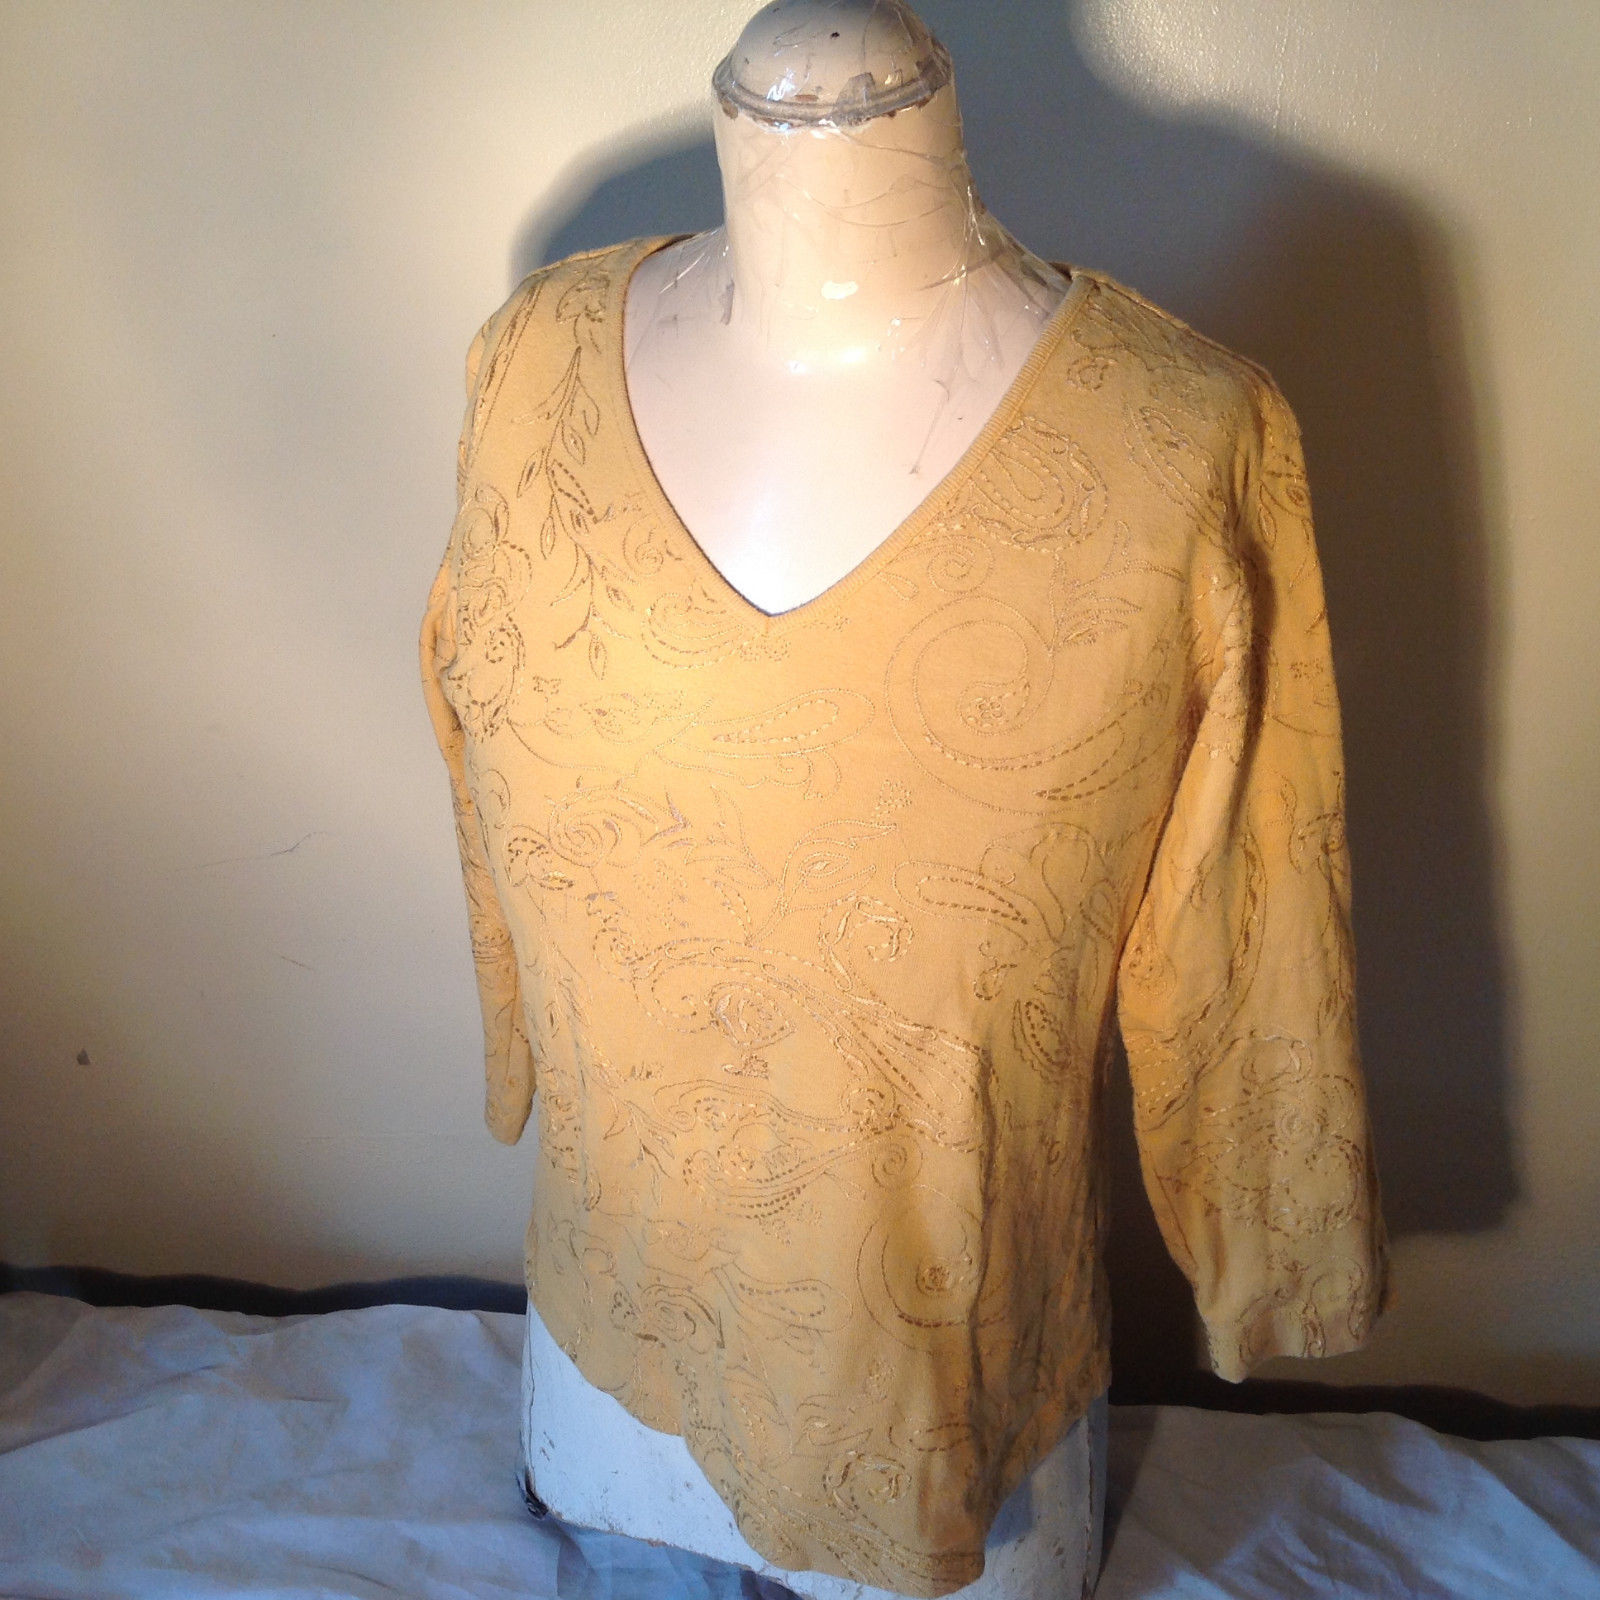 Chicos Gold Yellow V Neck Top Three Quarter Length Sleeves Size 1